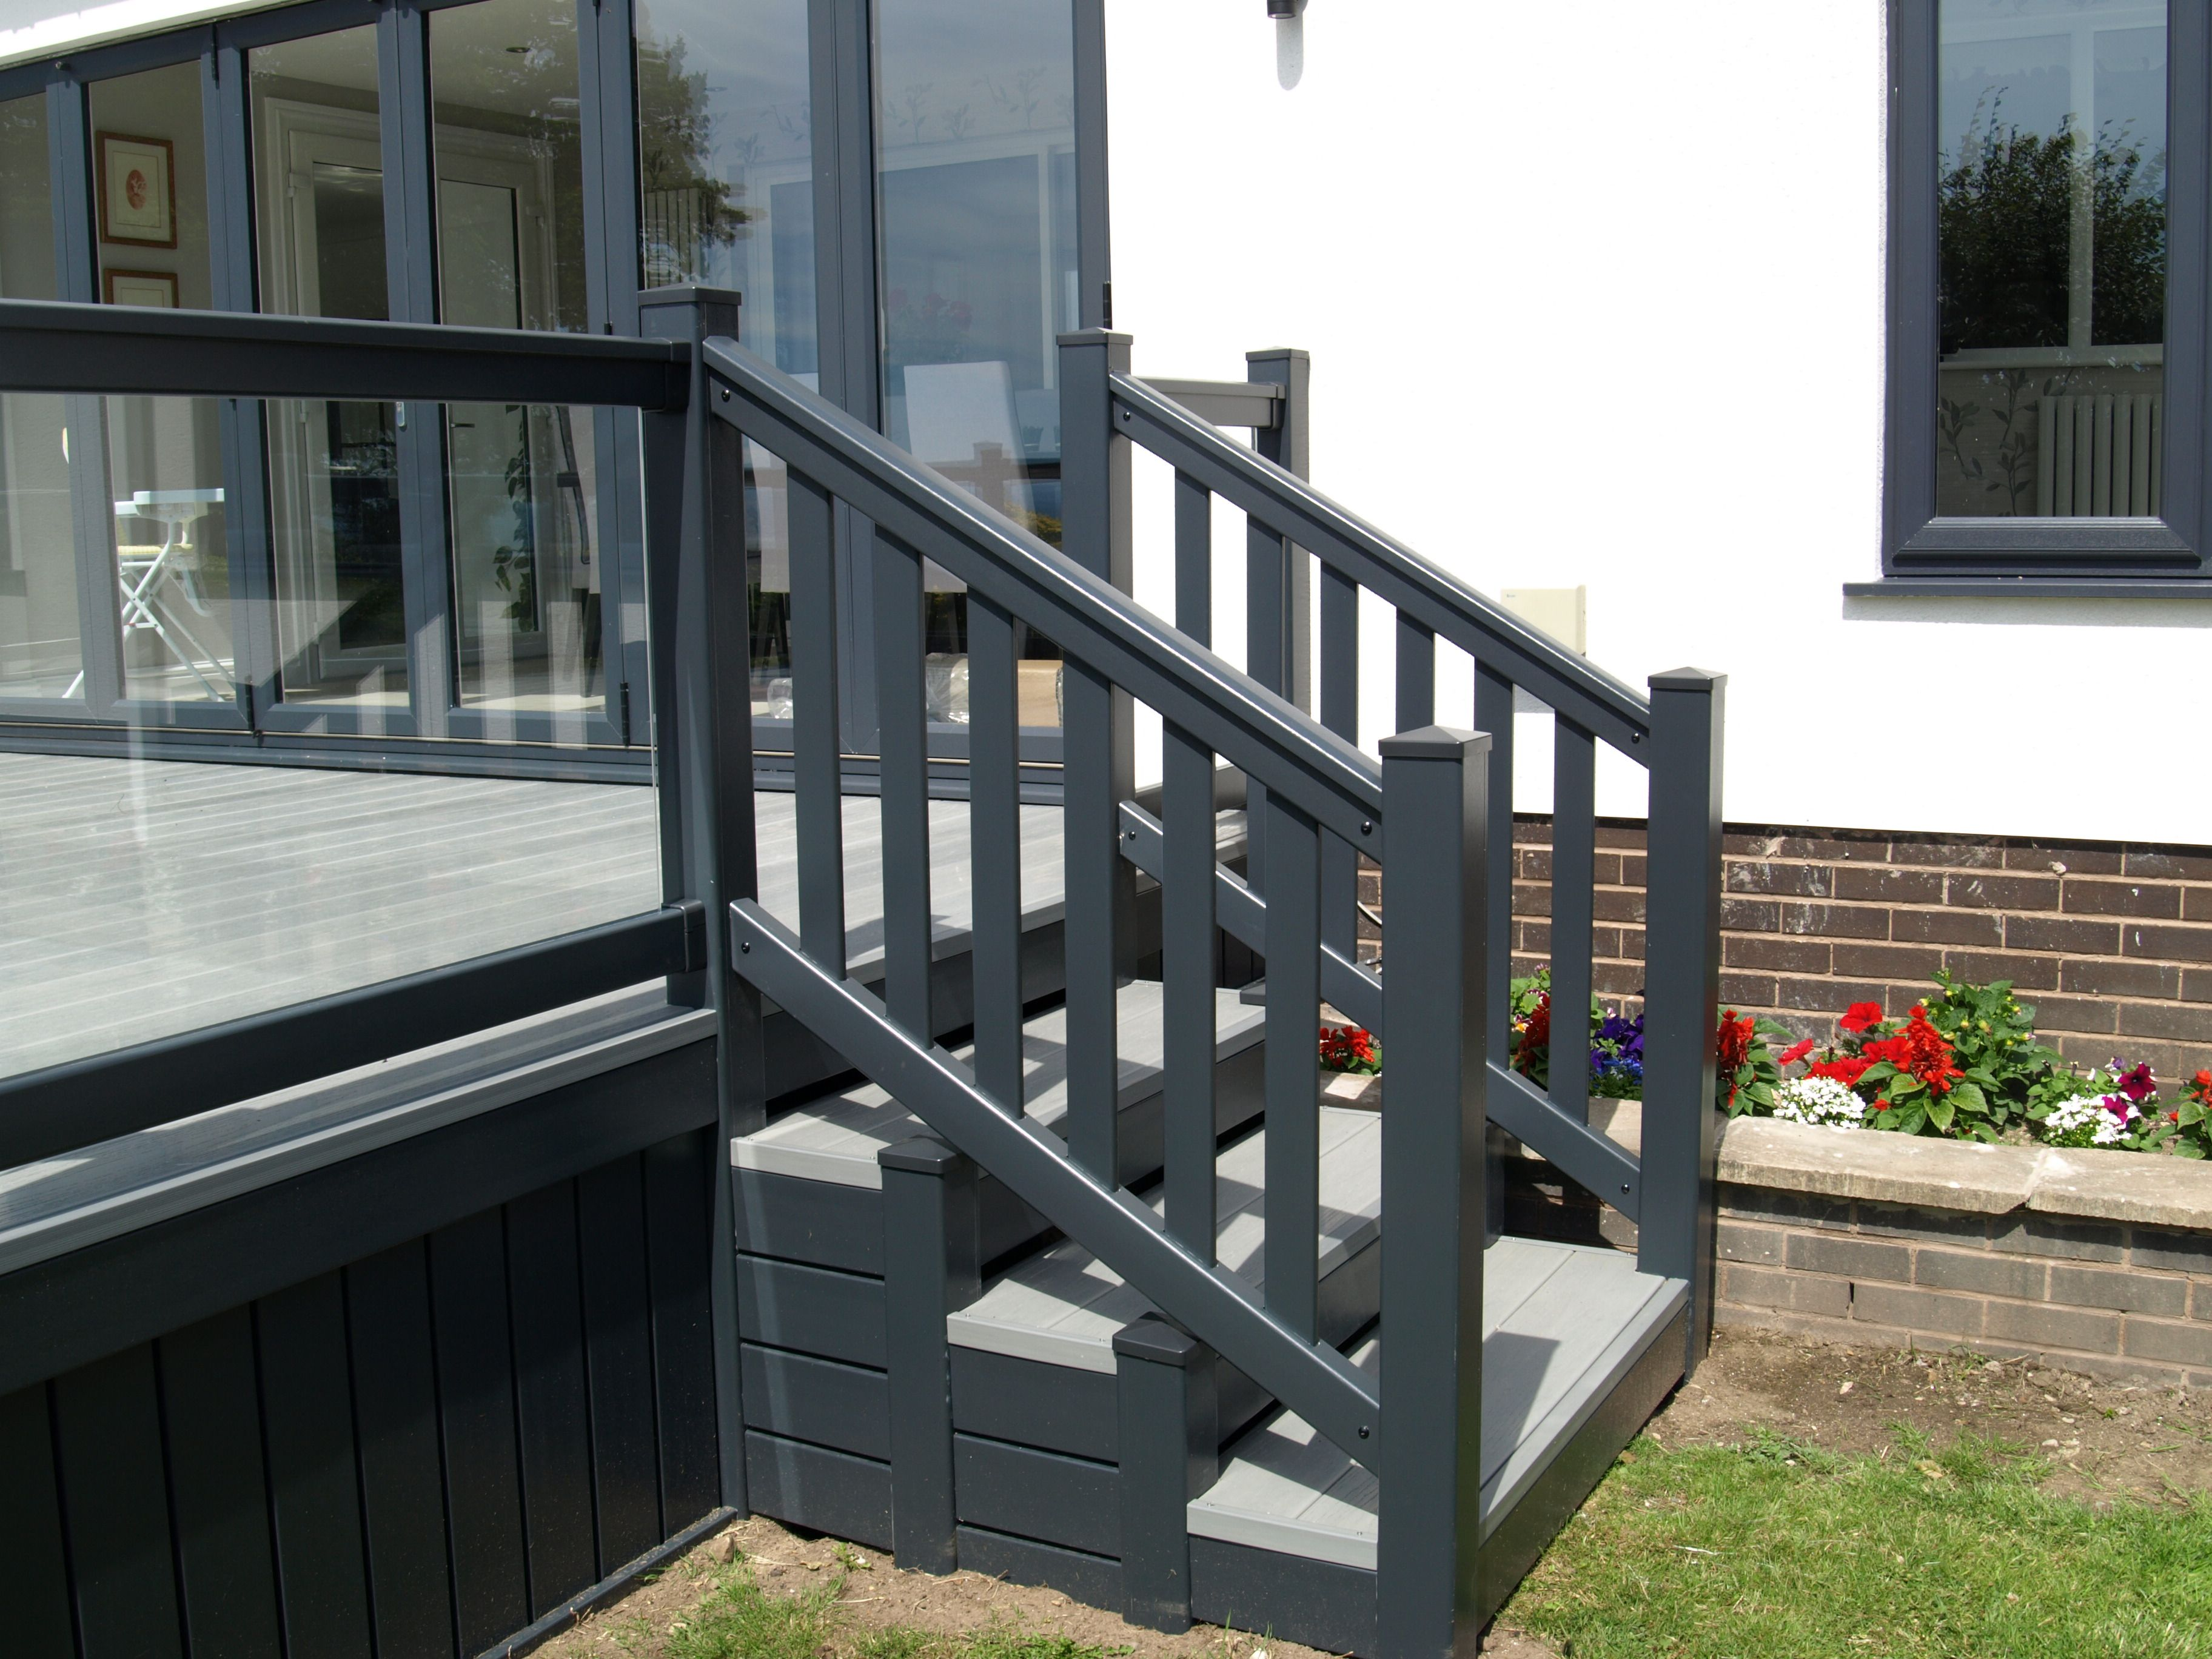 Diy Wood Plastic Hand Railing Outdoor In Uk Using Wood